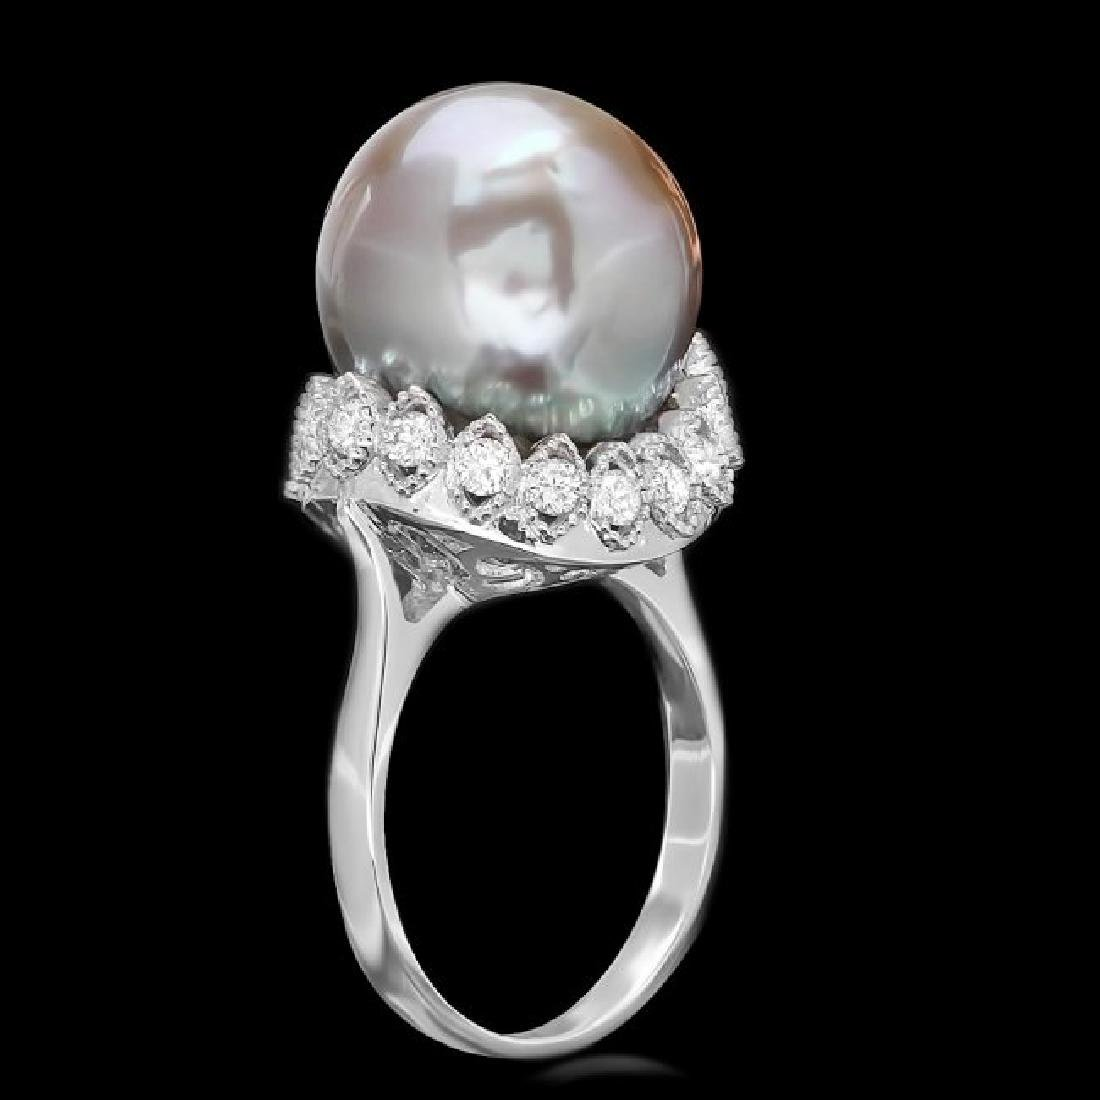 14k Gold 14 X 14mm Pearl 0.70ct Diamond Ring - 2